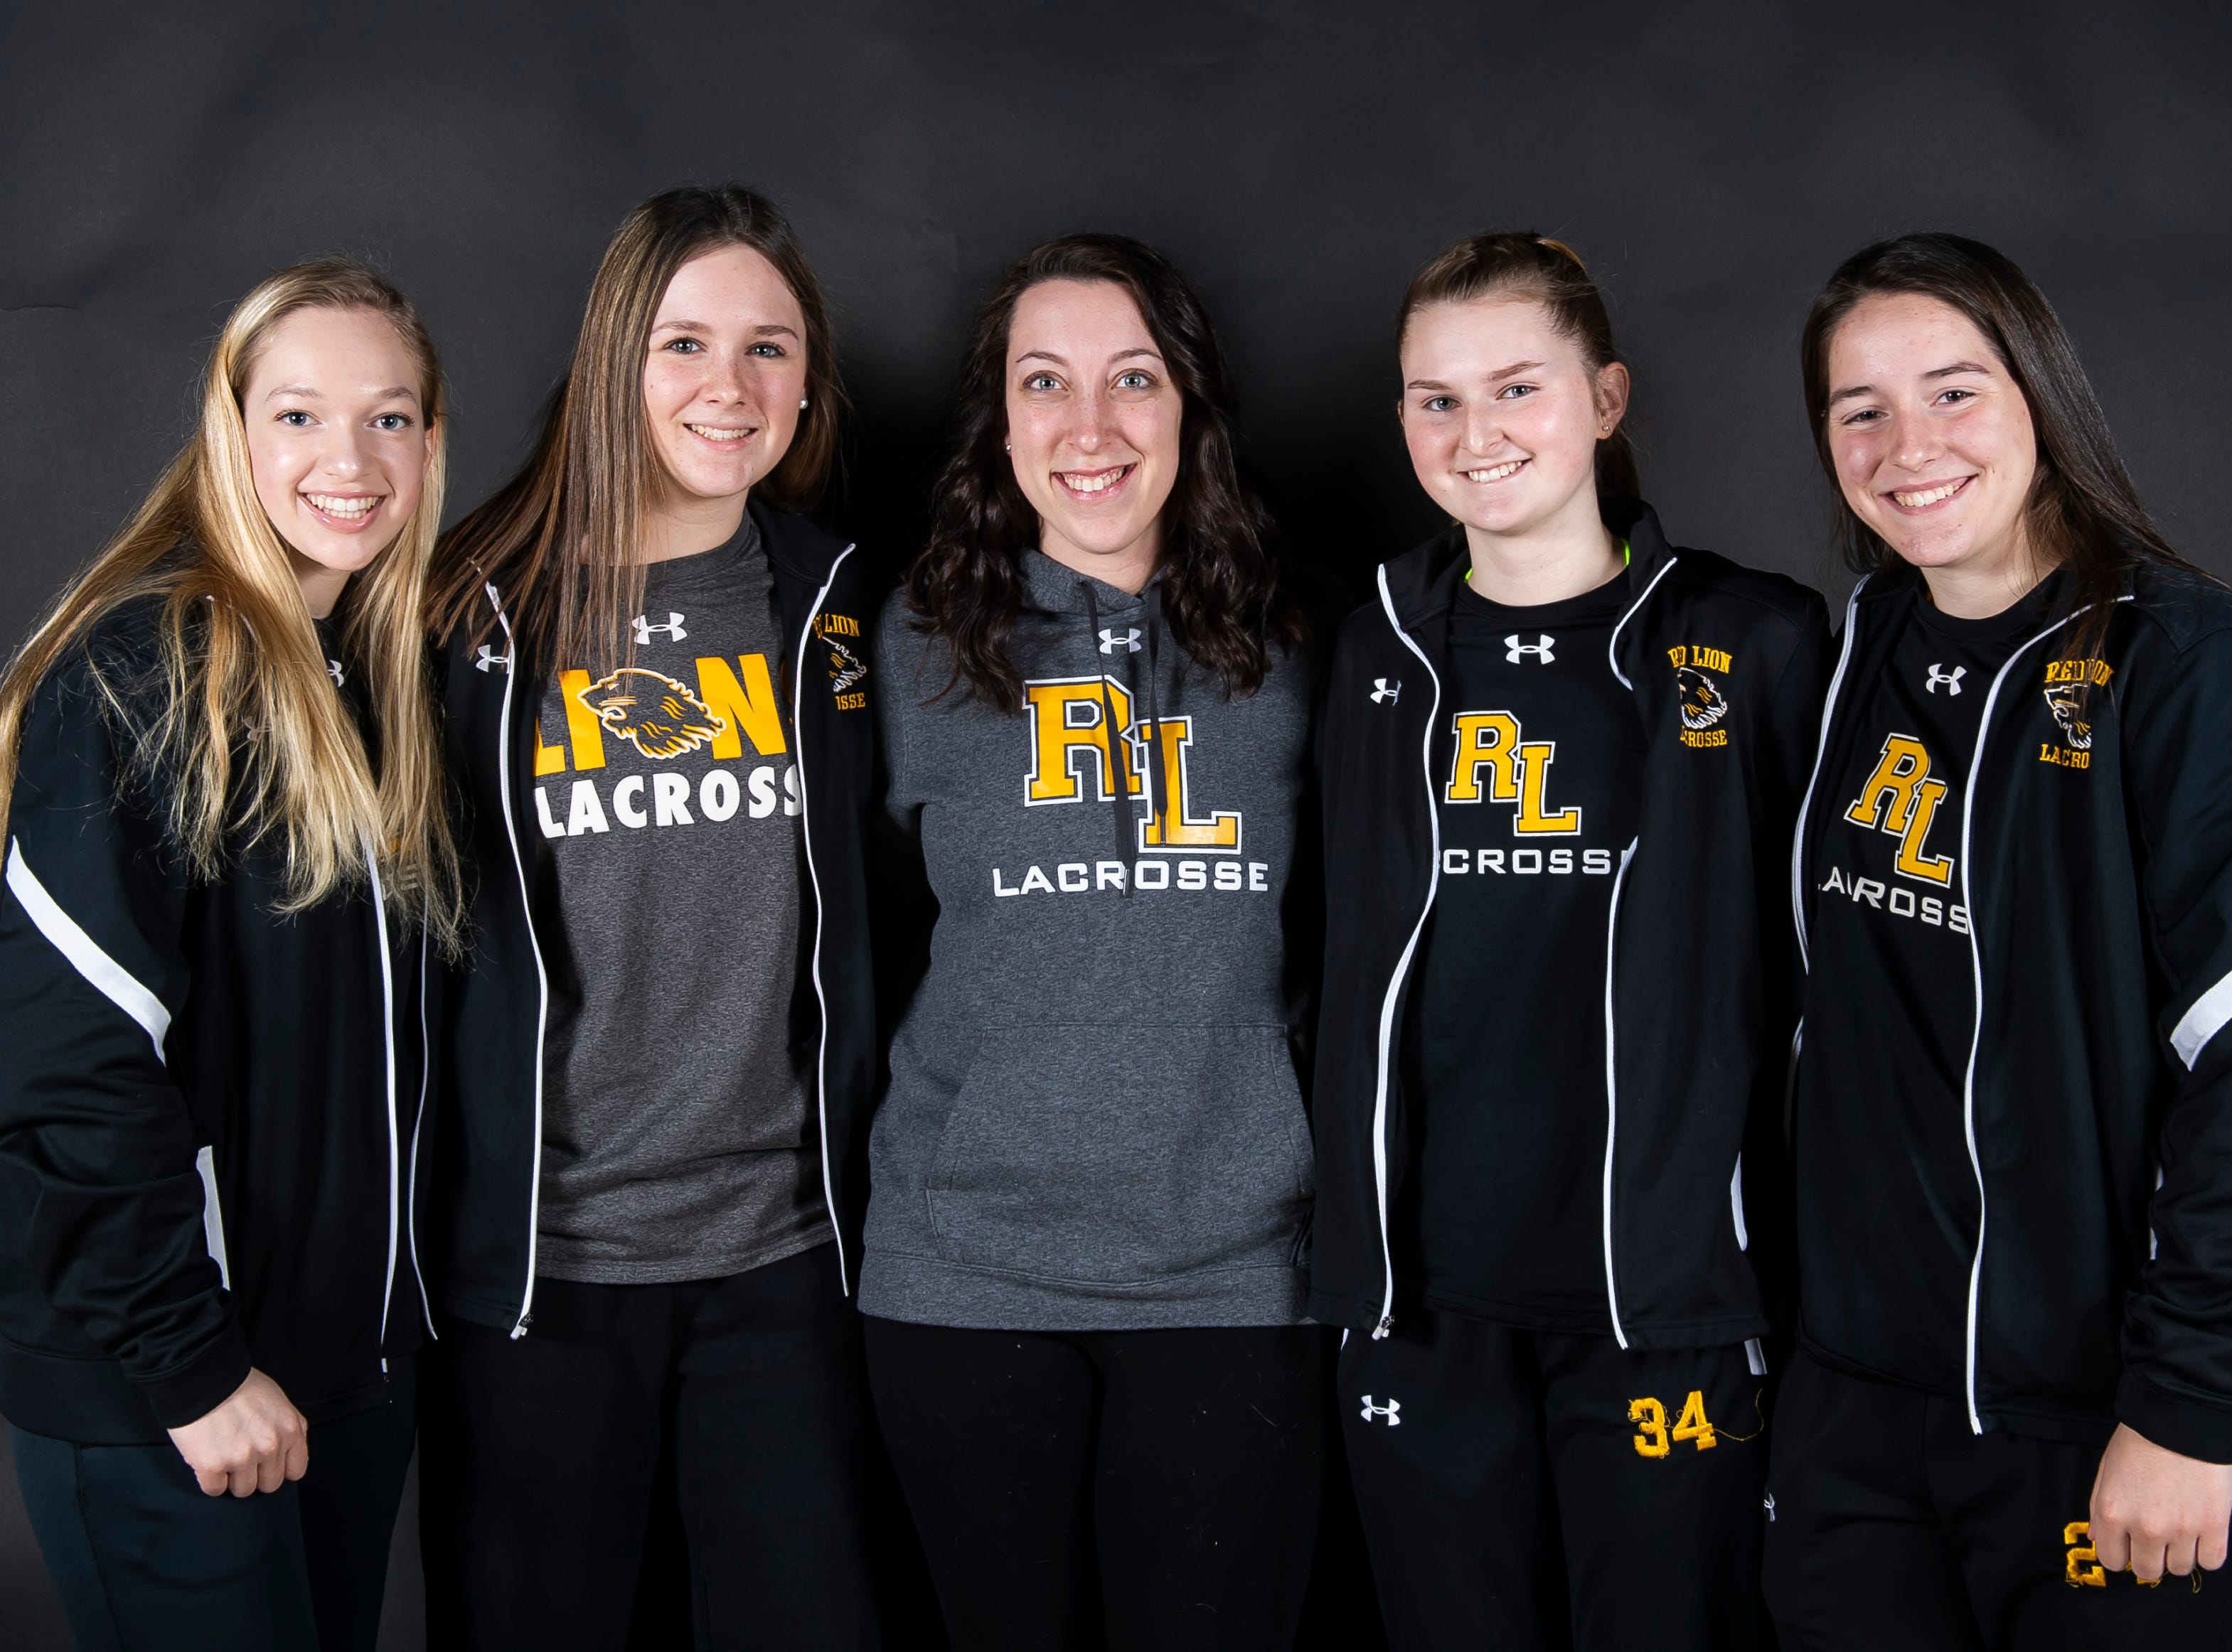 (From left) Red Lion lacrosse's Chloe Vega, Brittany Baker, coach Megan Luckenbaugh, Allie Dettinger and Courtney Cleary pose in the GameTimePA photo booth during spring sports media day in York Sunday, March 10, 2019.